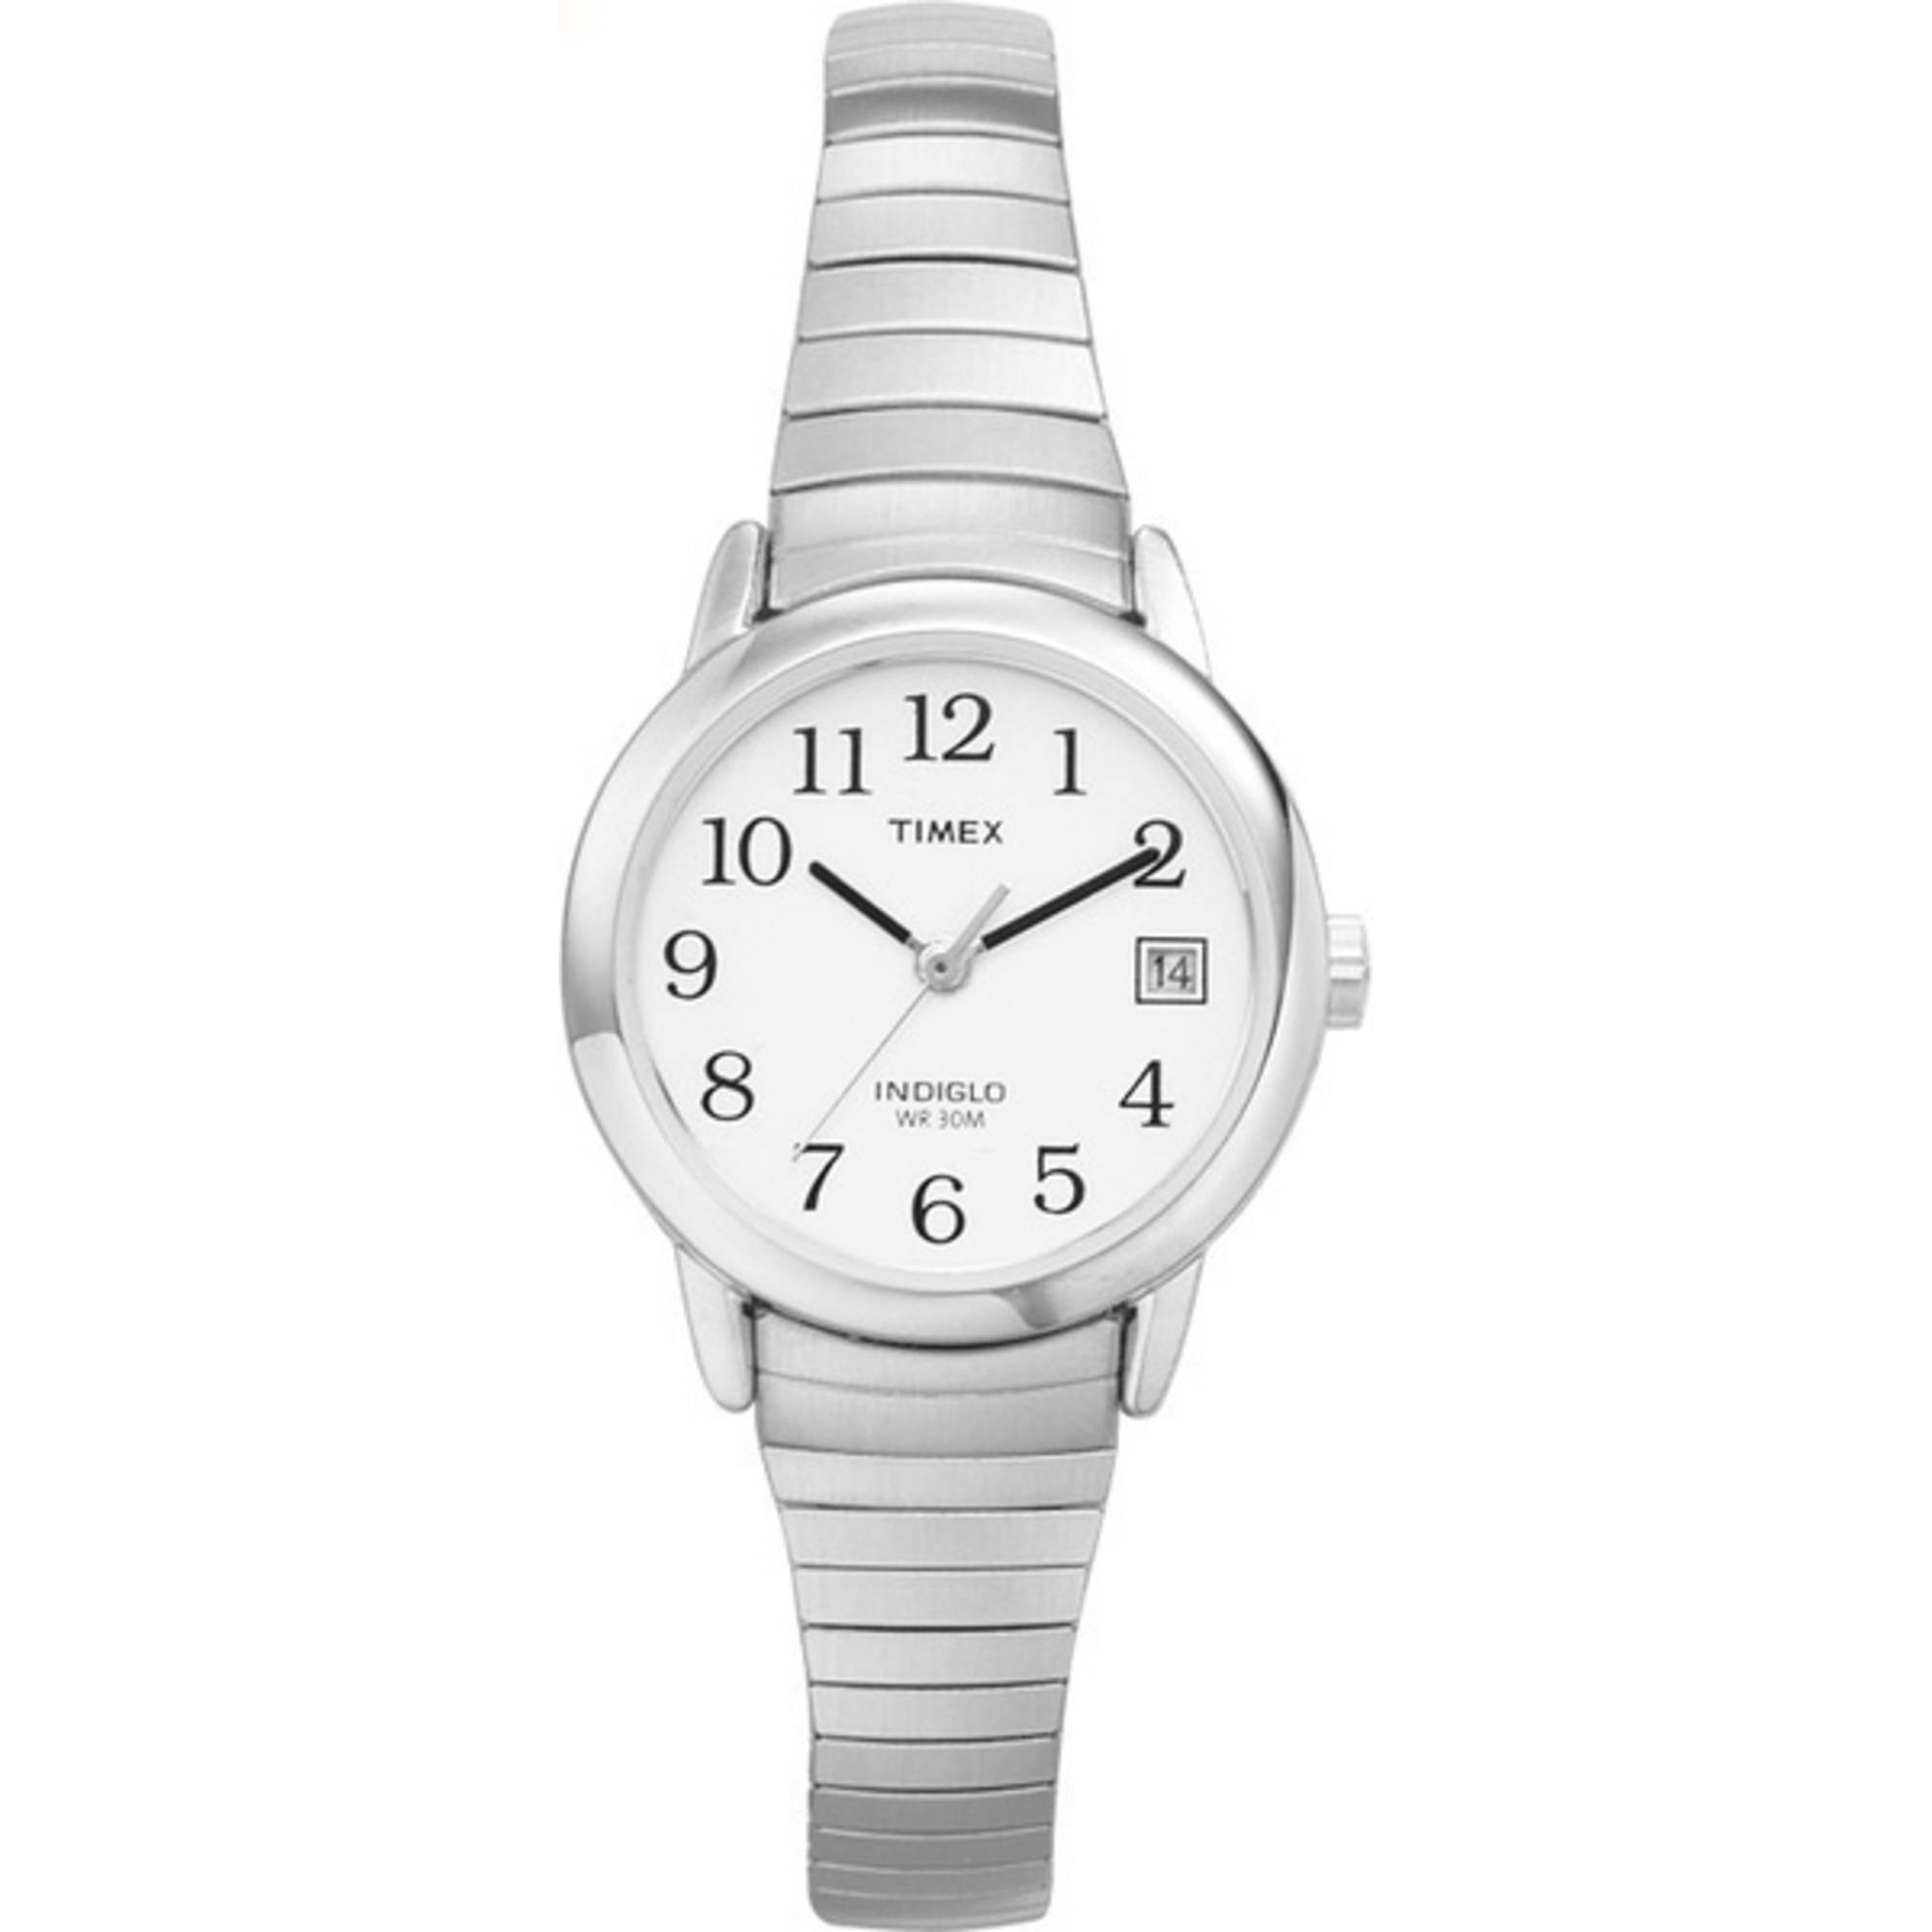 s white watches watch dial products classic women lady index trouvaille